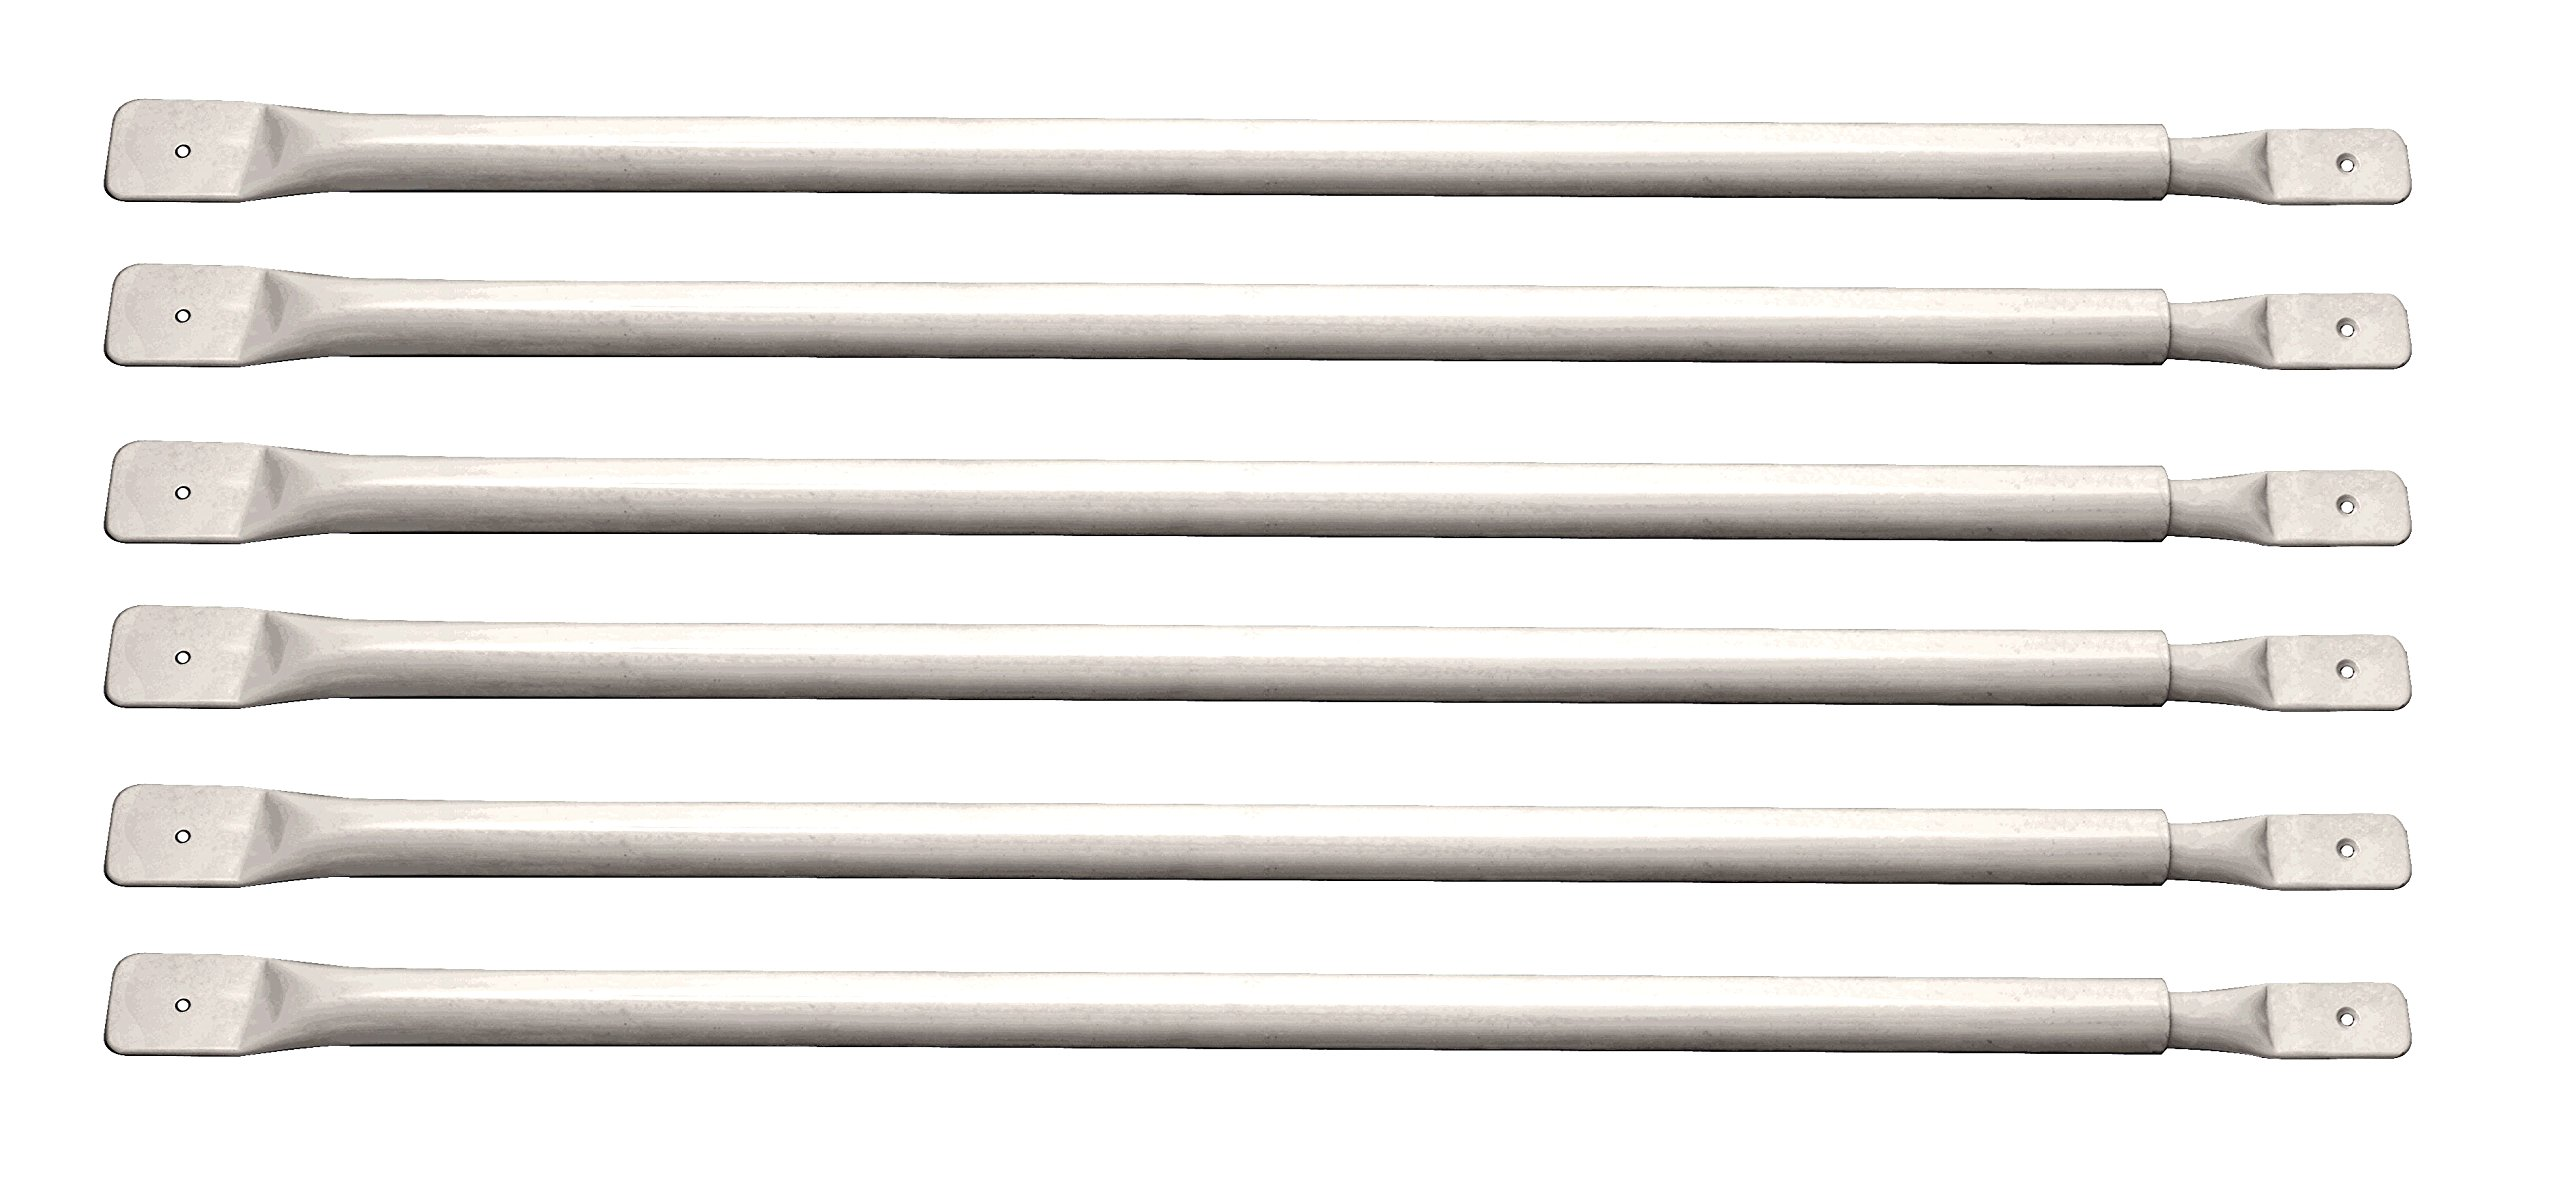 Budget Window Security Bars (Adjustable) Pack of 6 Supplied with security screws